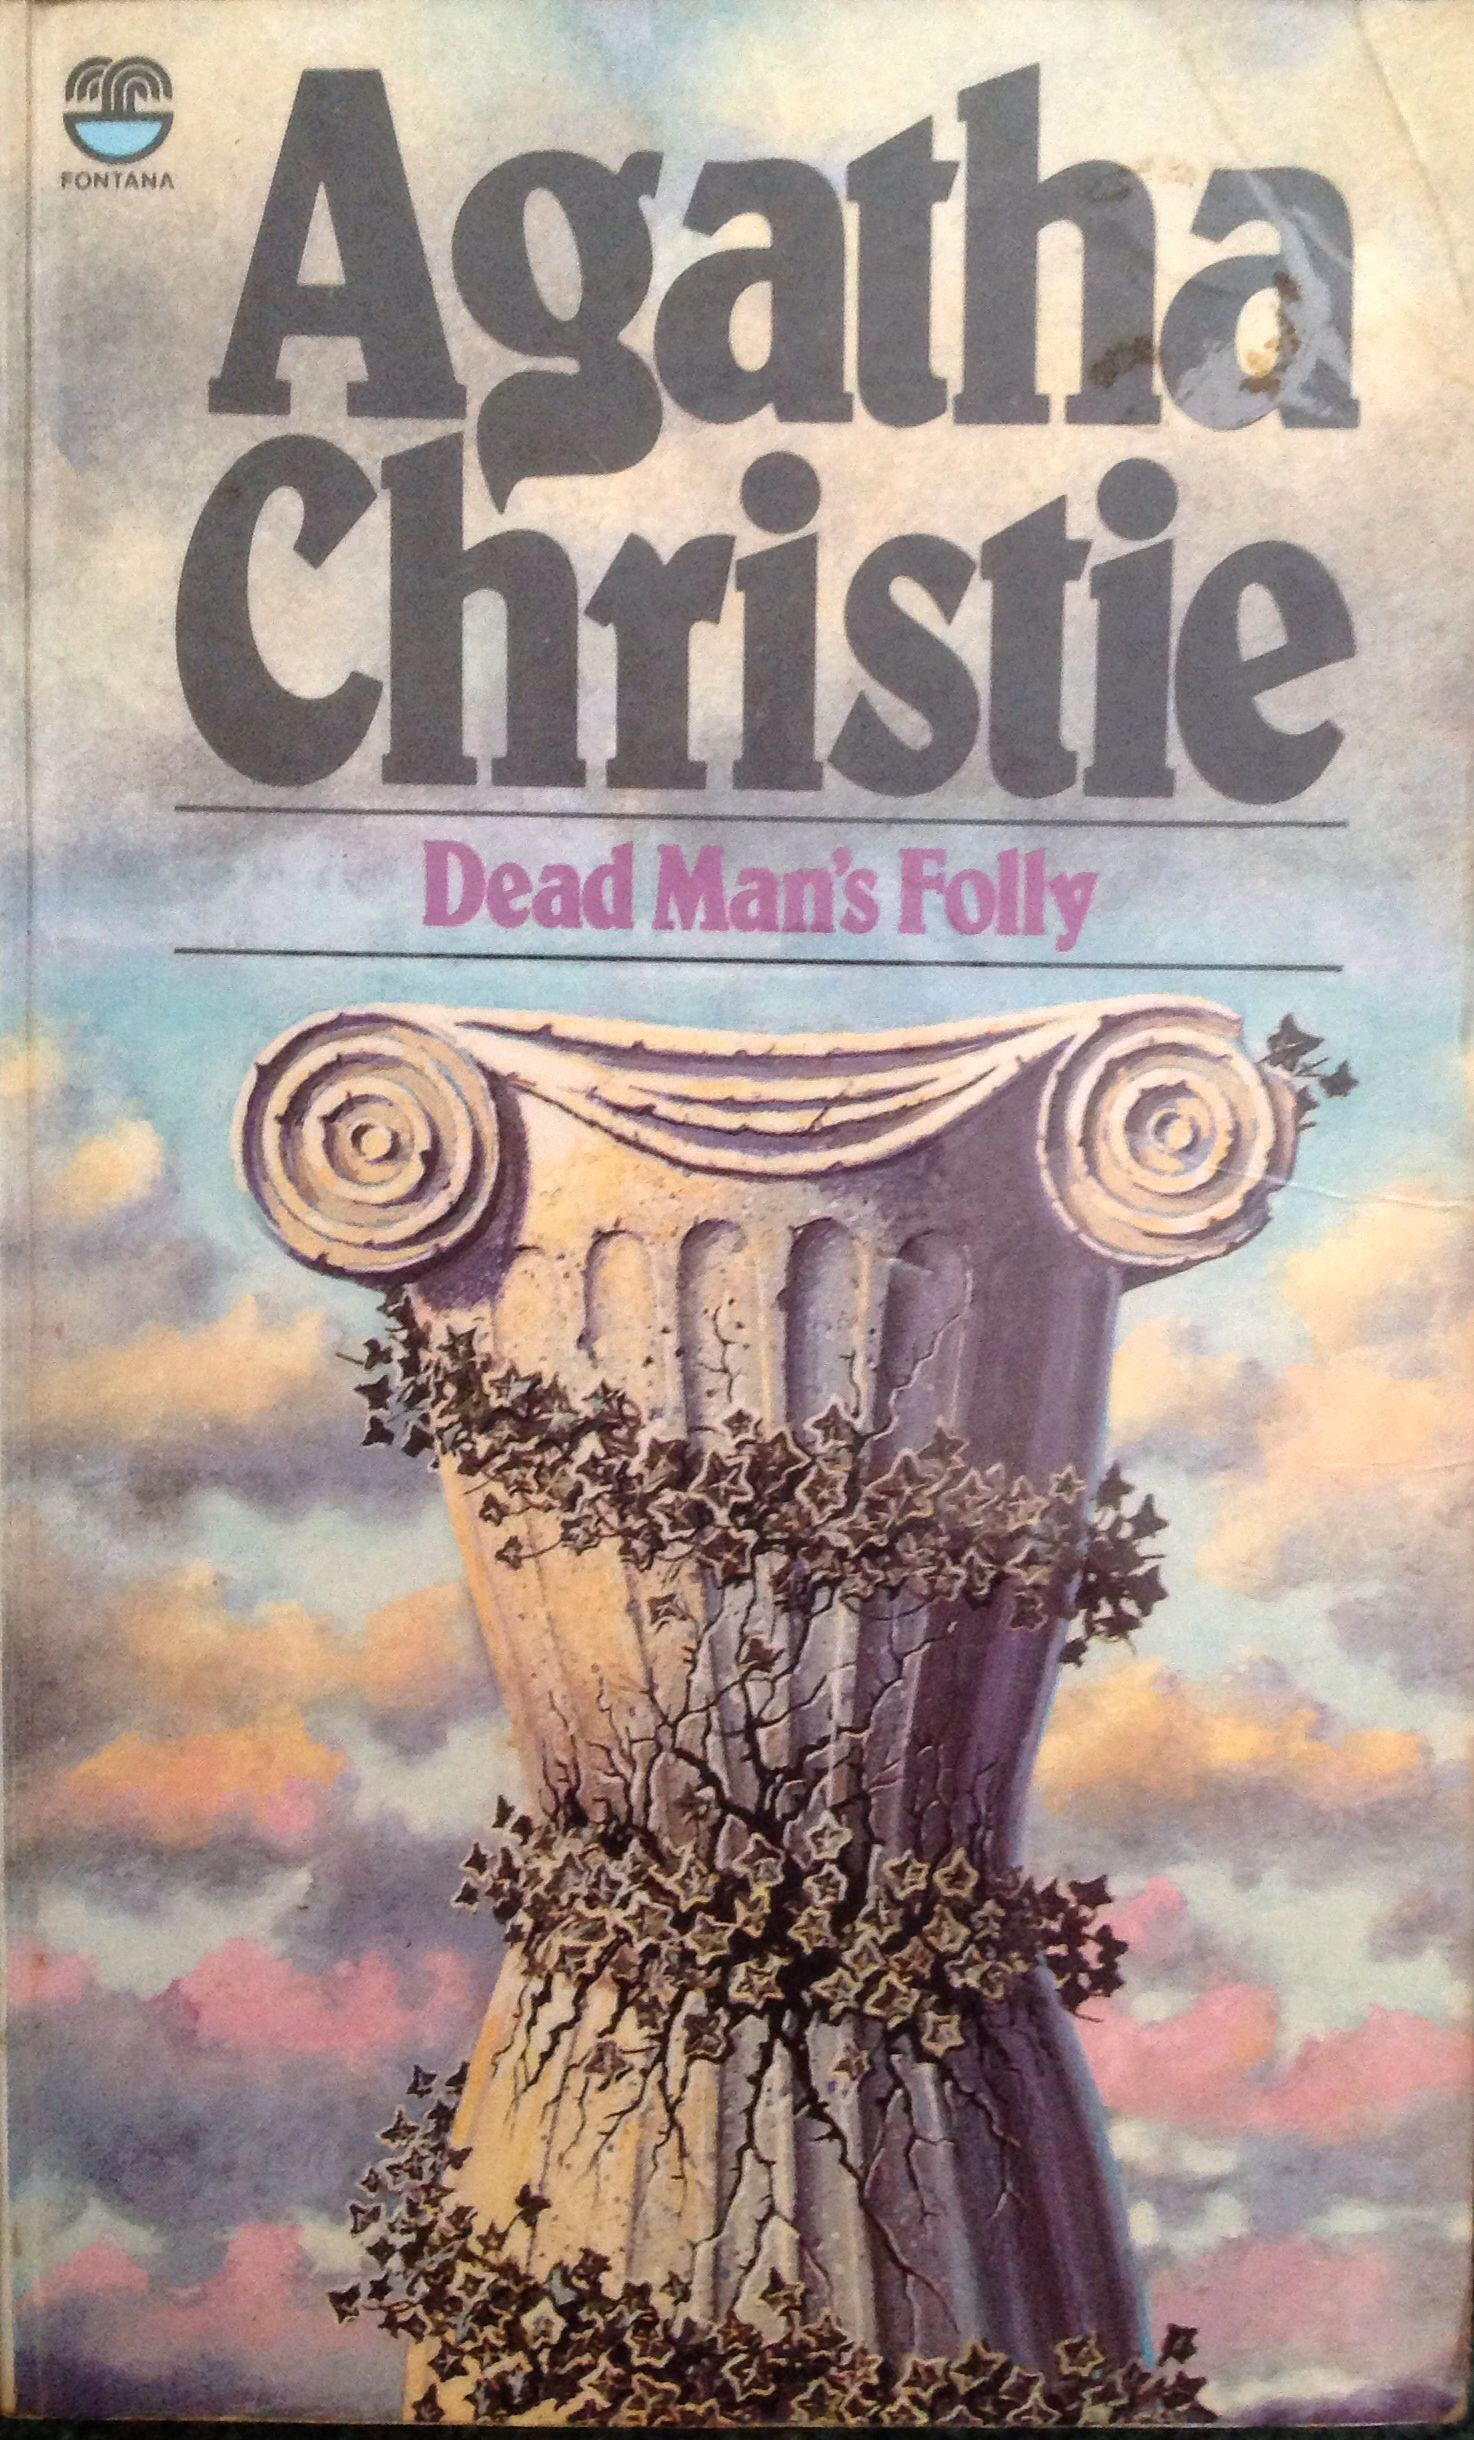 22 Dead Man's Folly ideas | dead man's folly, dead man, hercule poirot